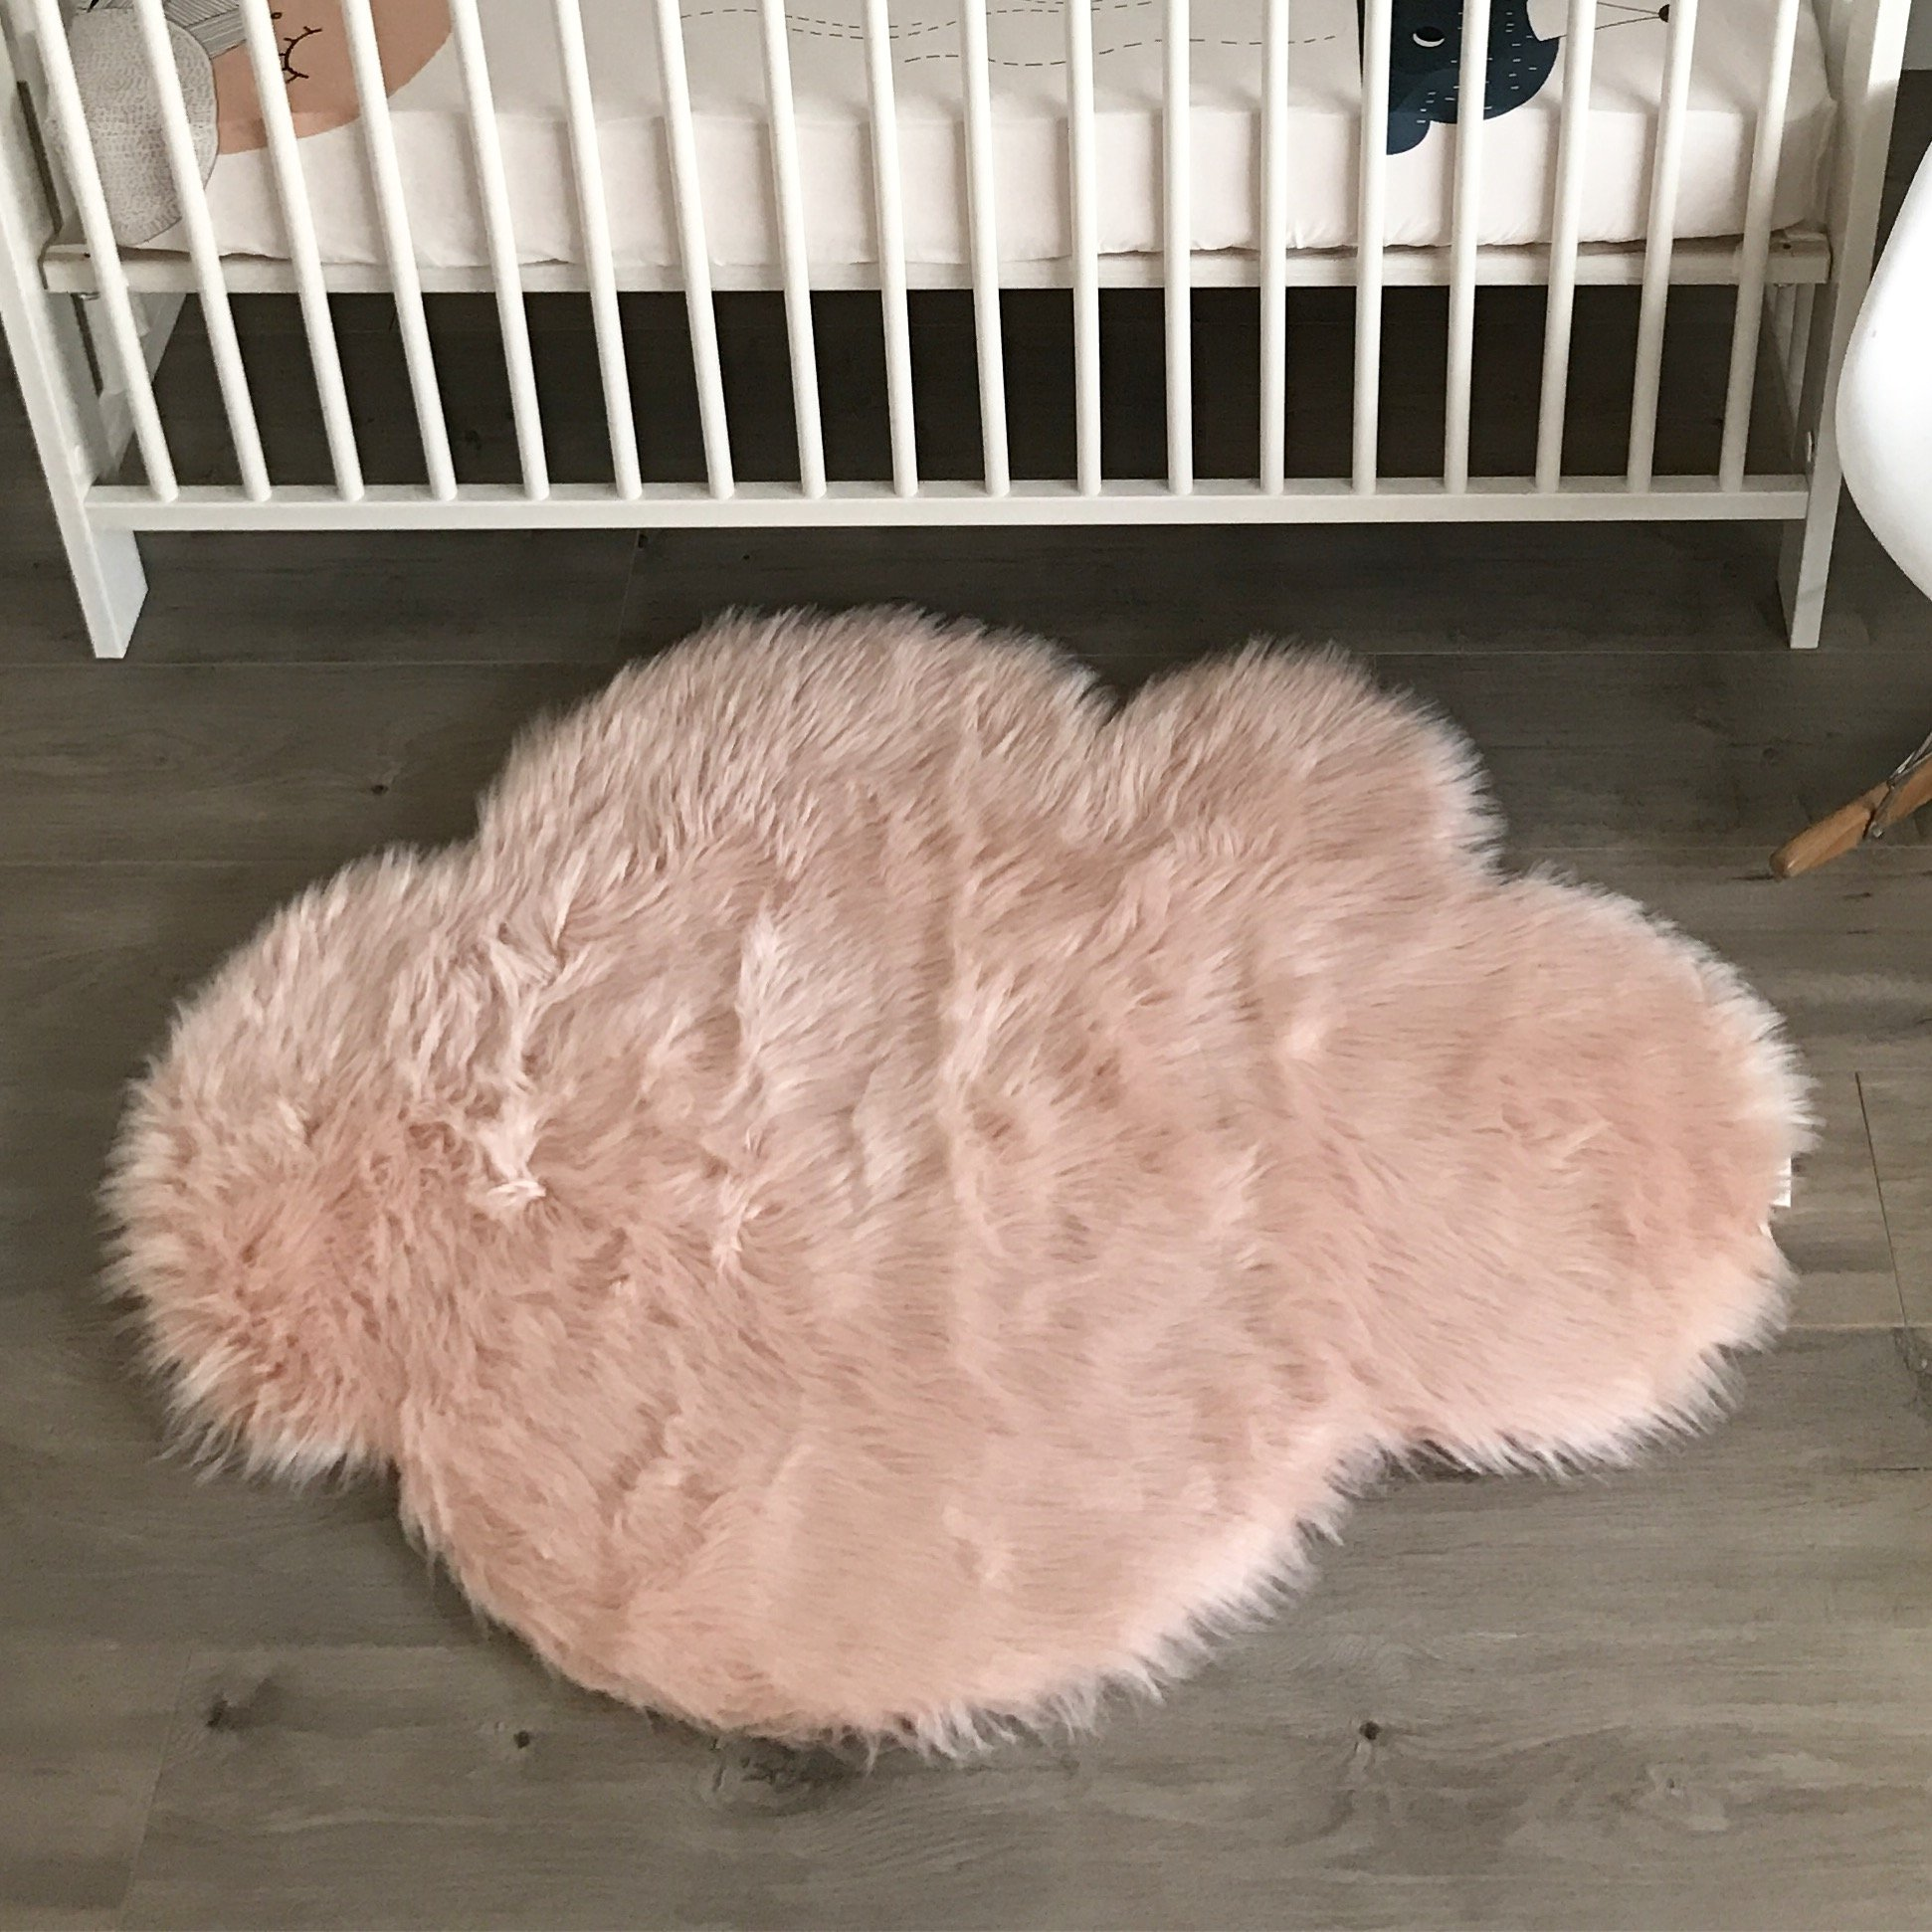 Machine Washable Faux Sheepskin Blush Cloud Area Rug 32'' x 44'' - Soft and silky - Perfect for baby's room, nursery, playroom (2' 7'' x 3' 7'') - Blush Cloud